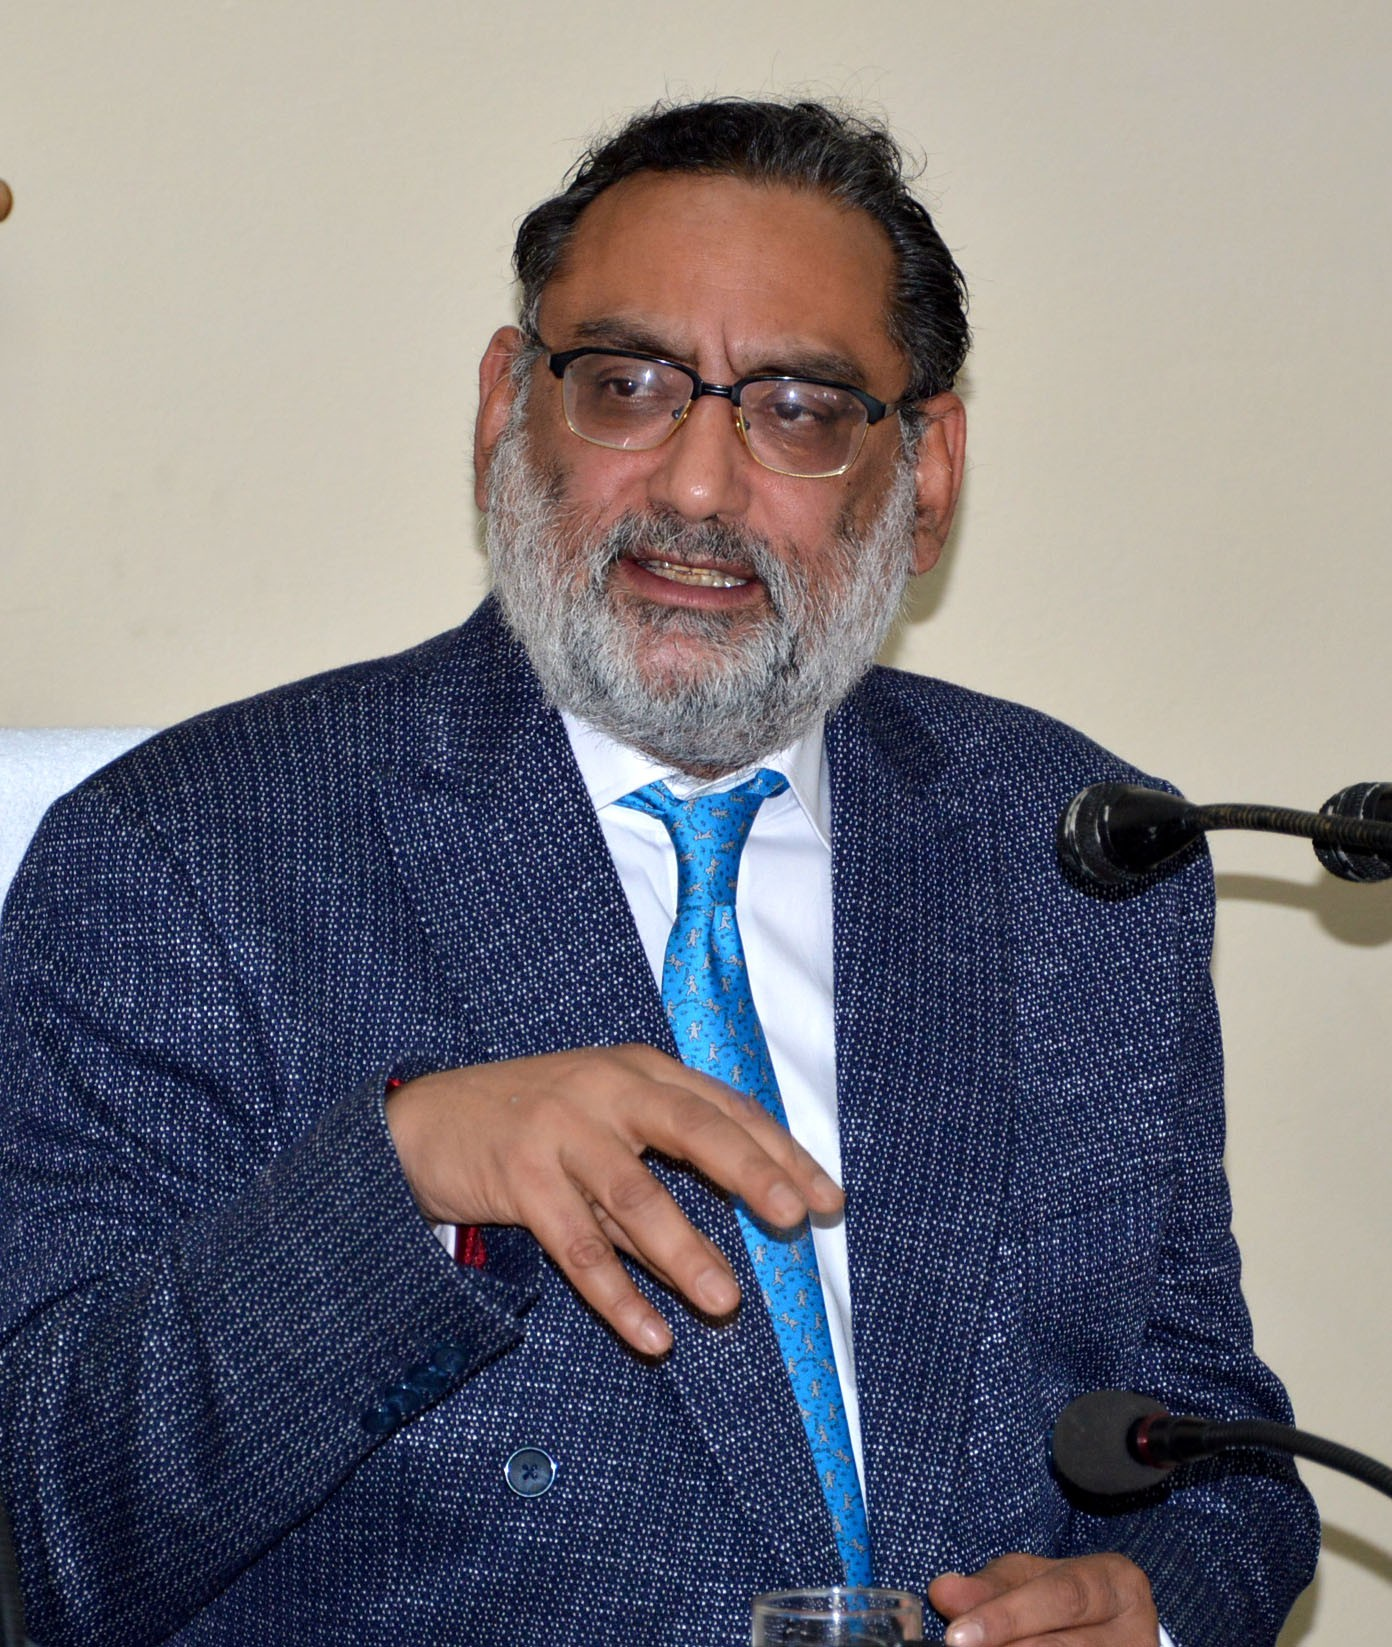 Govt to implement PPP mode in 10 key sectors: Drabu